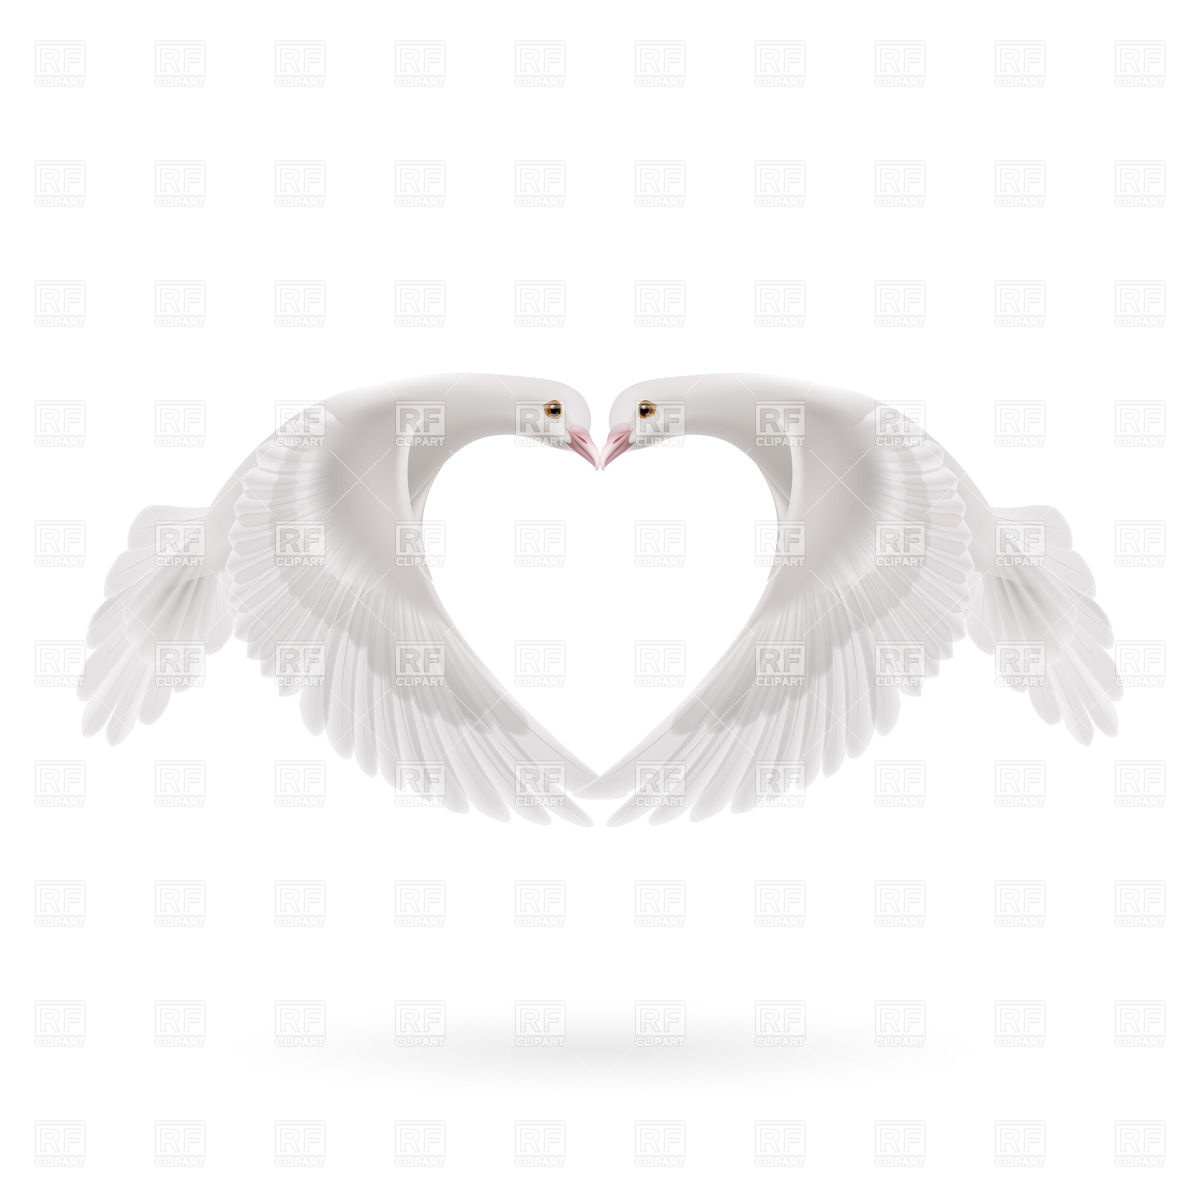 Doves making heart silhouette with wings Vector Image #35829.